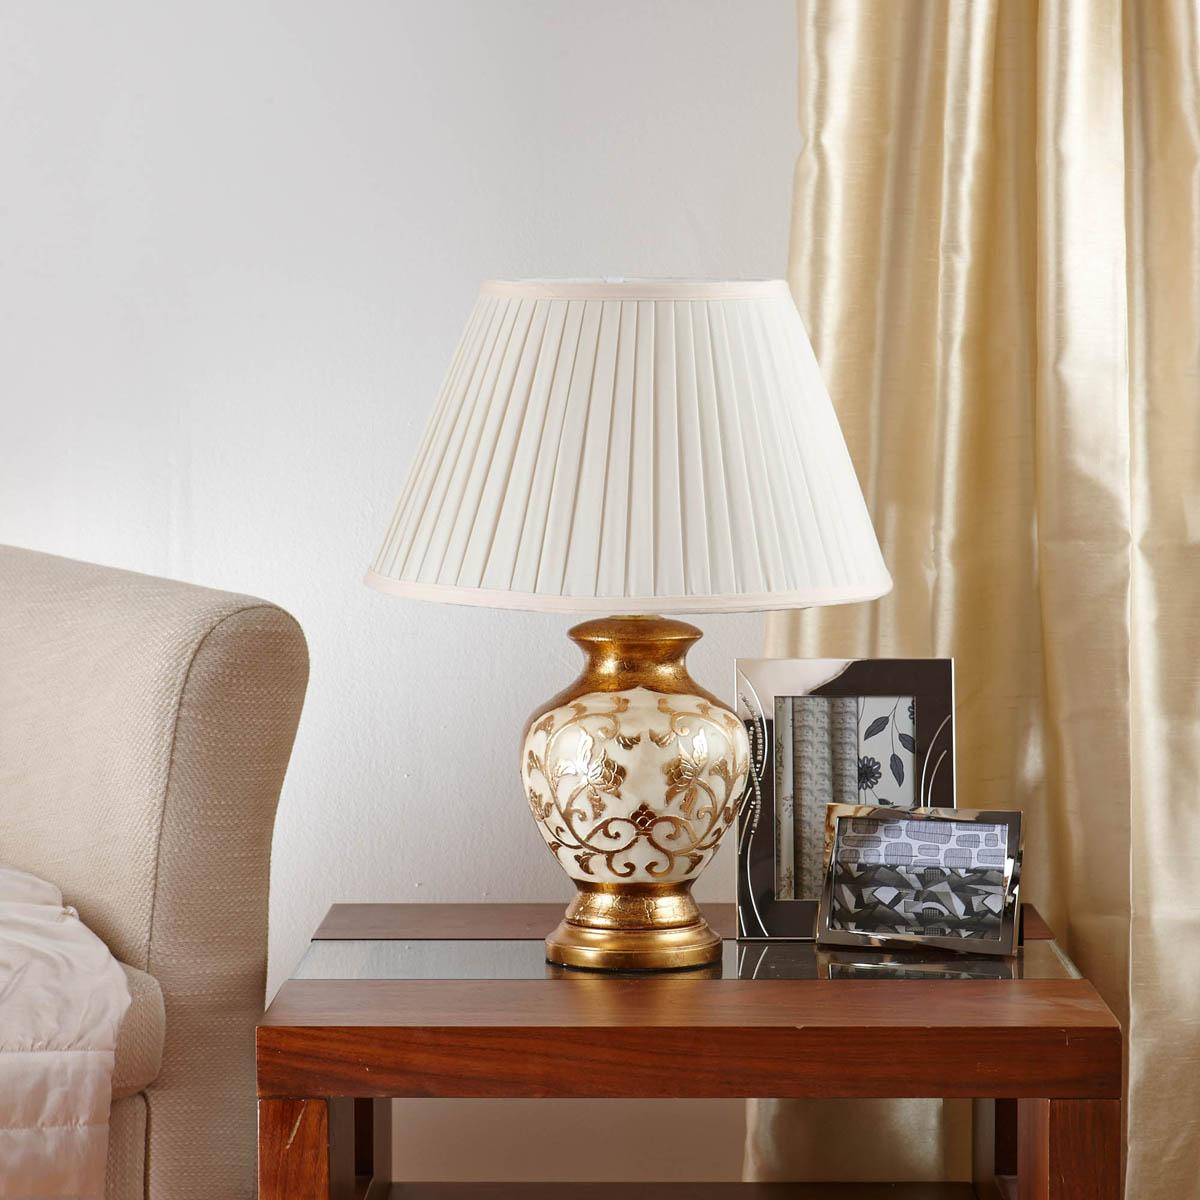 CreamGold Lucia Table Lamp